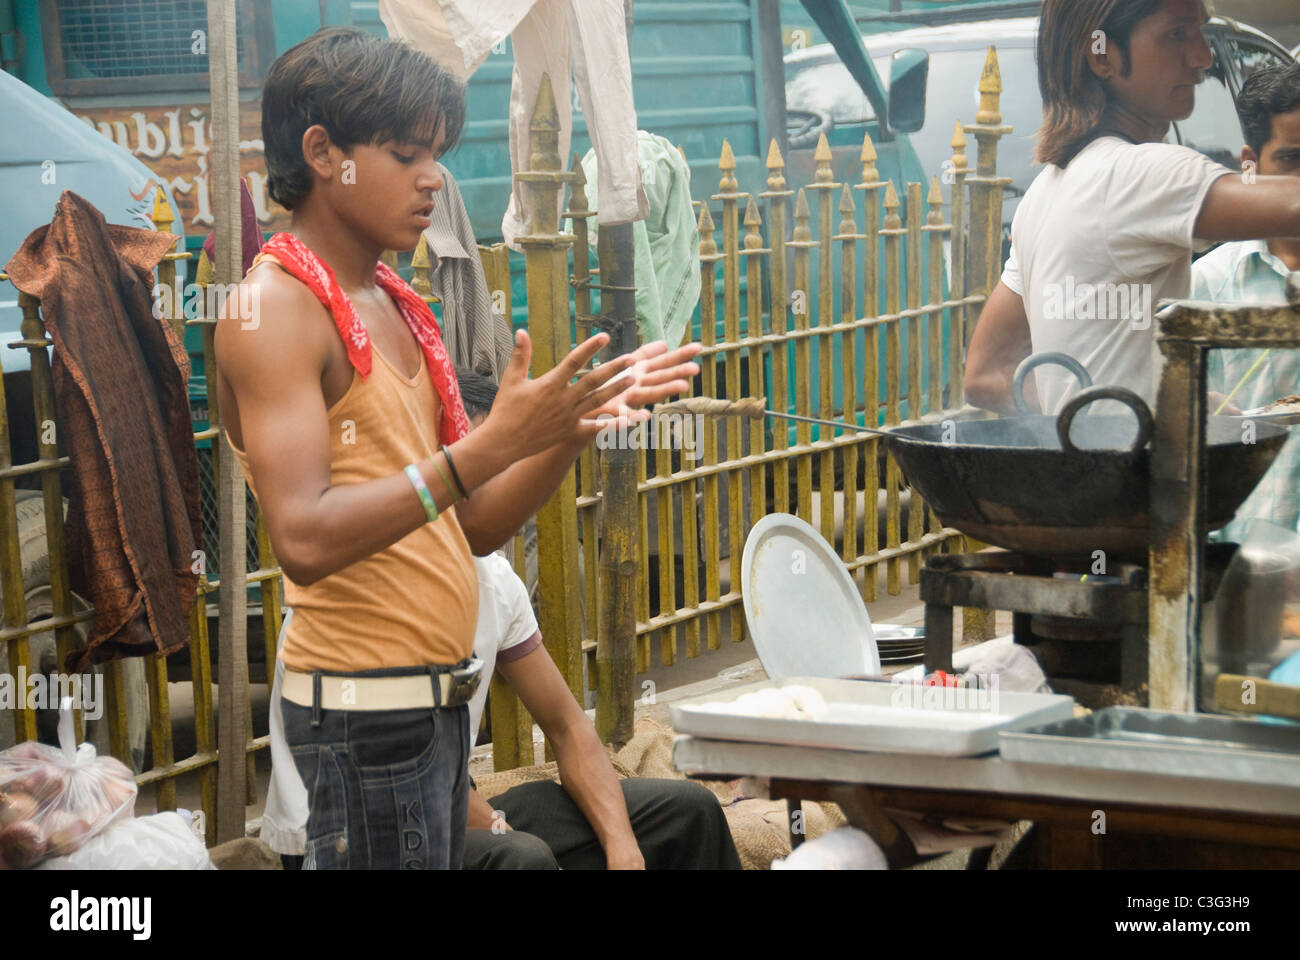 Men preparing chole bhature at a market stall, Chandni Chowk, Delhi, India - Stock Image